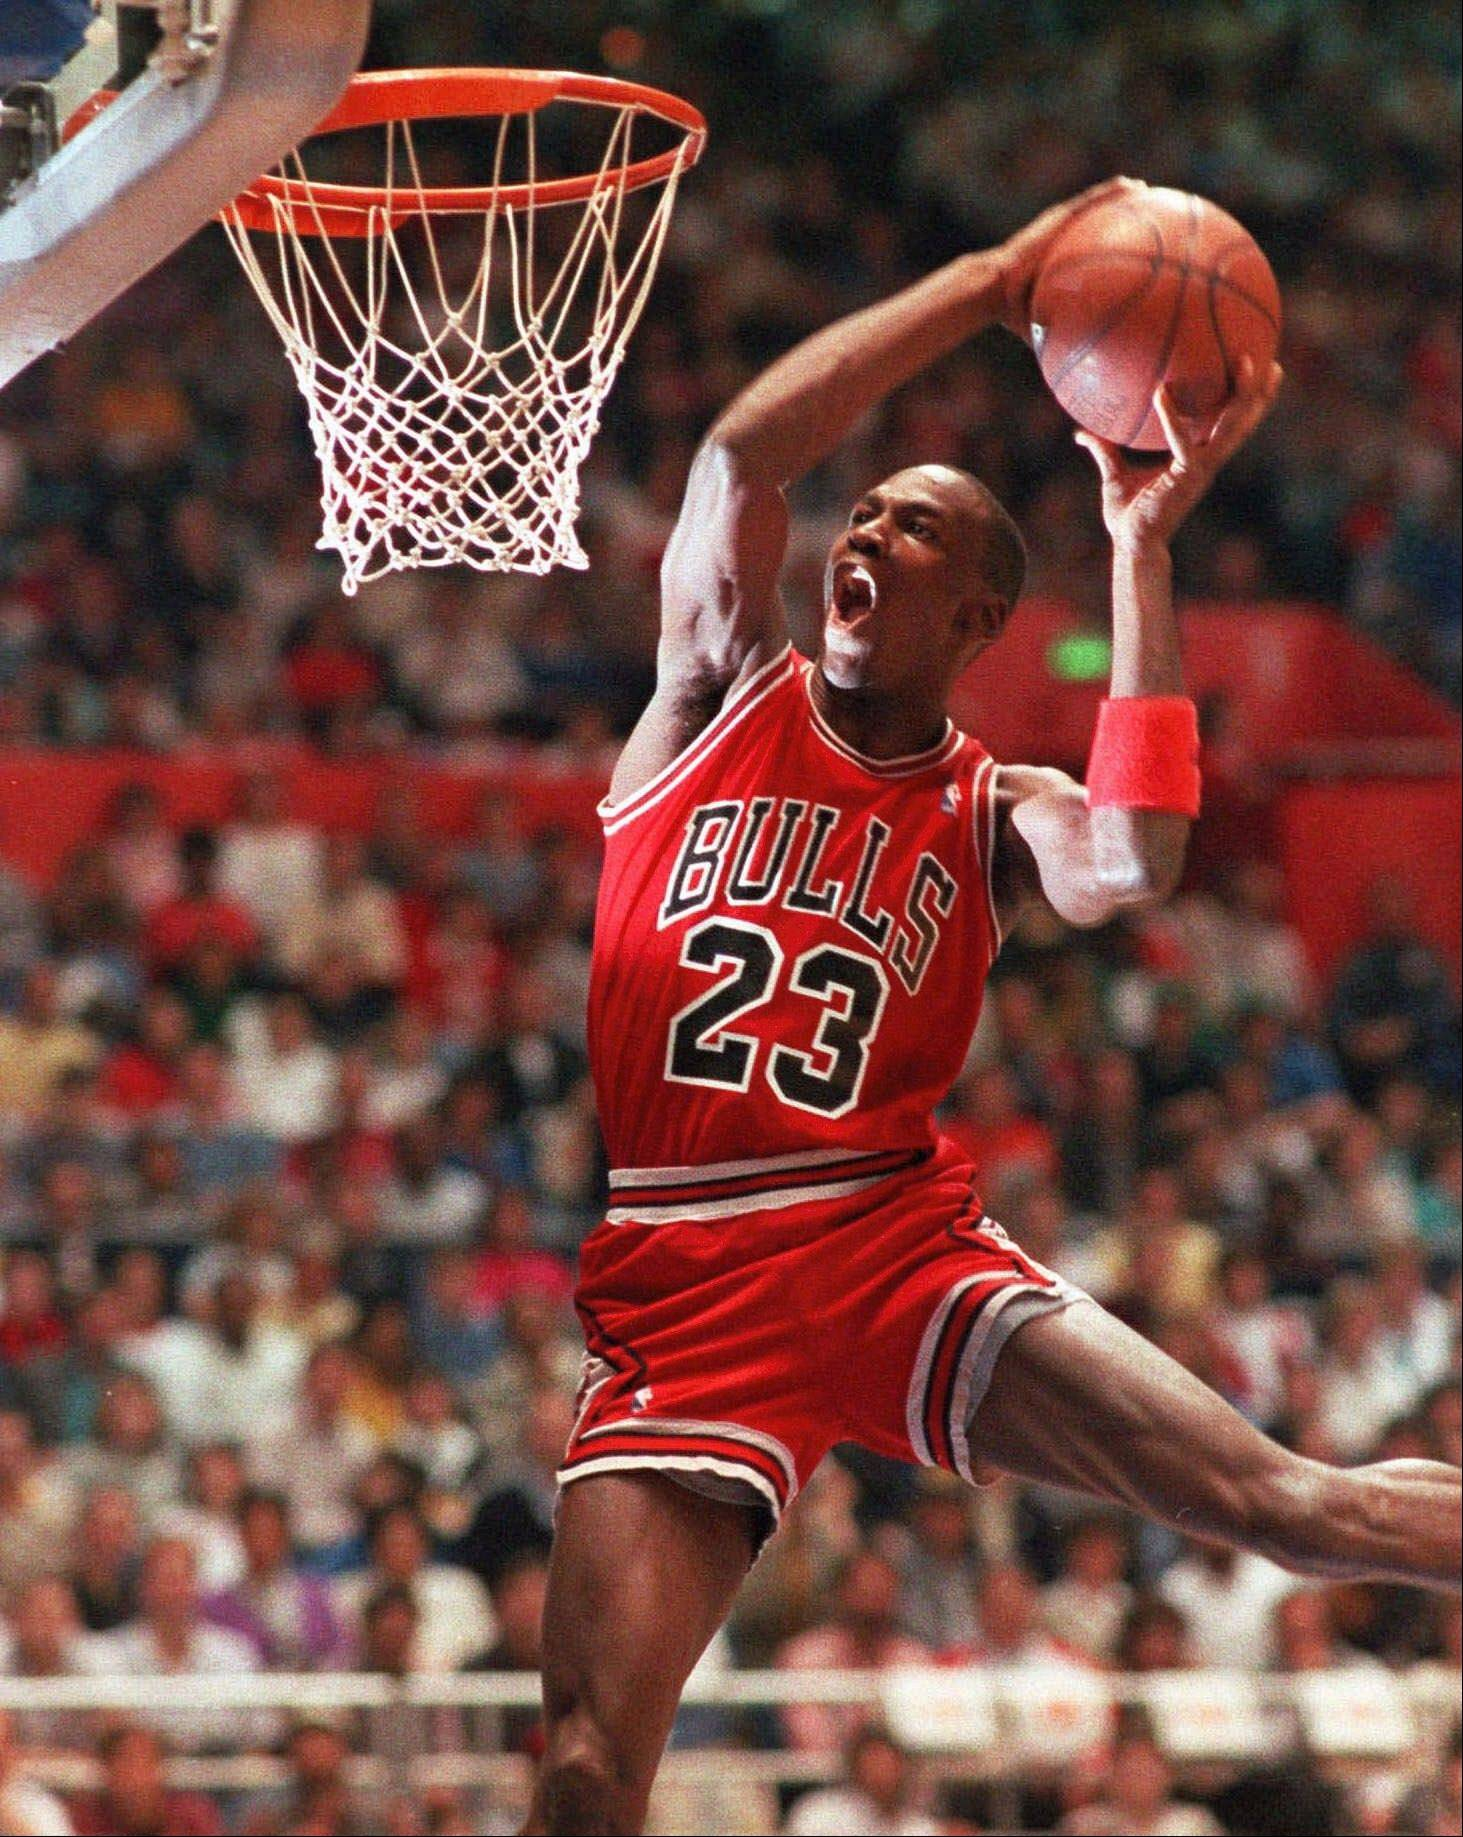 Michael Jordan helped the Chicago Bulls win six NBA championships.